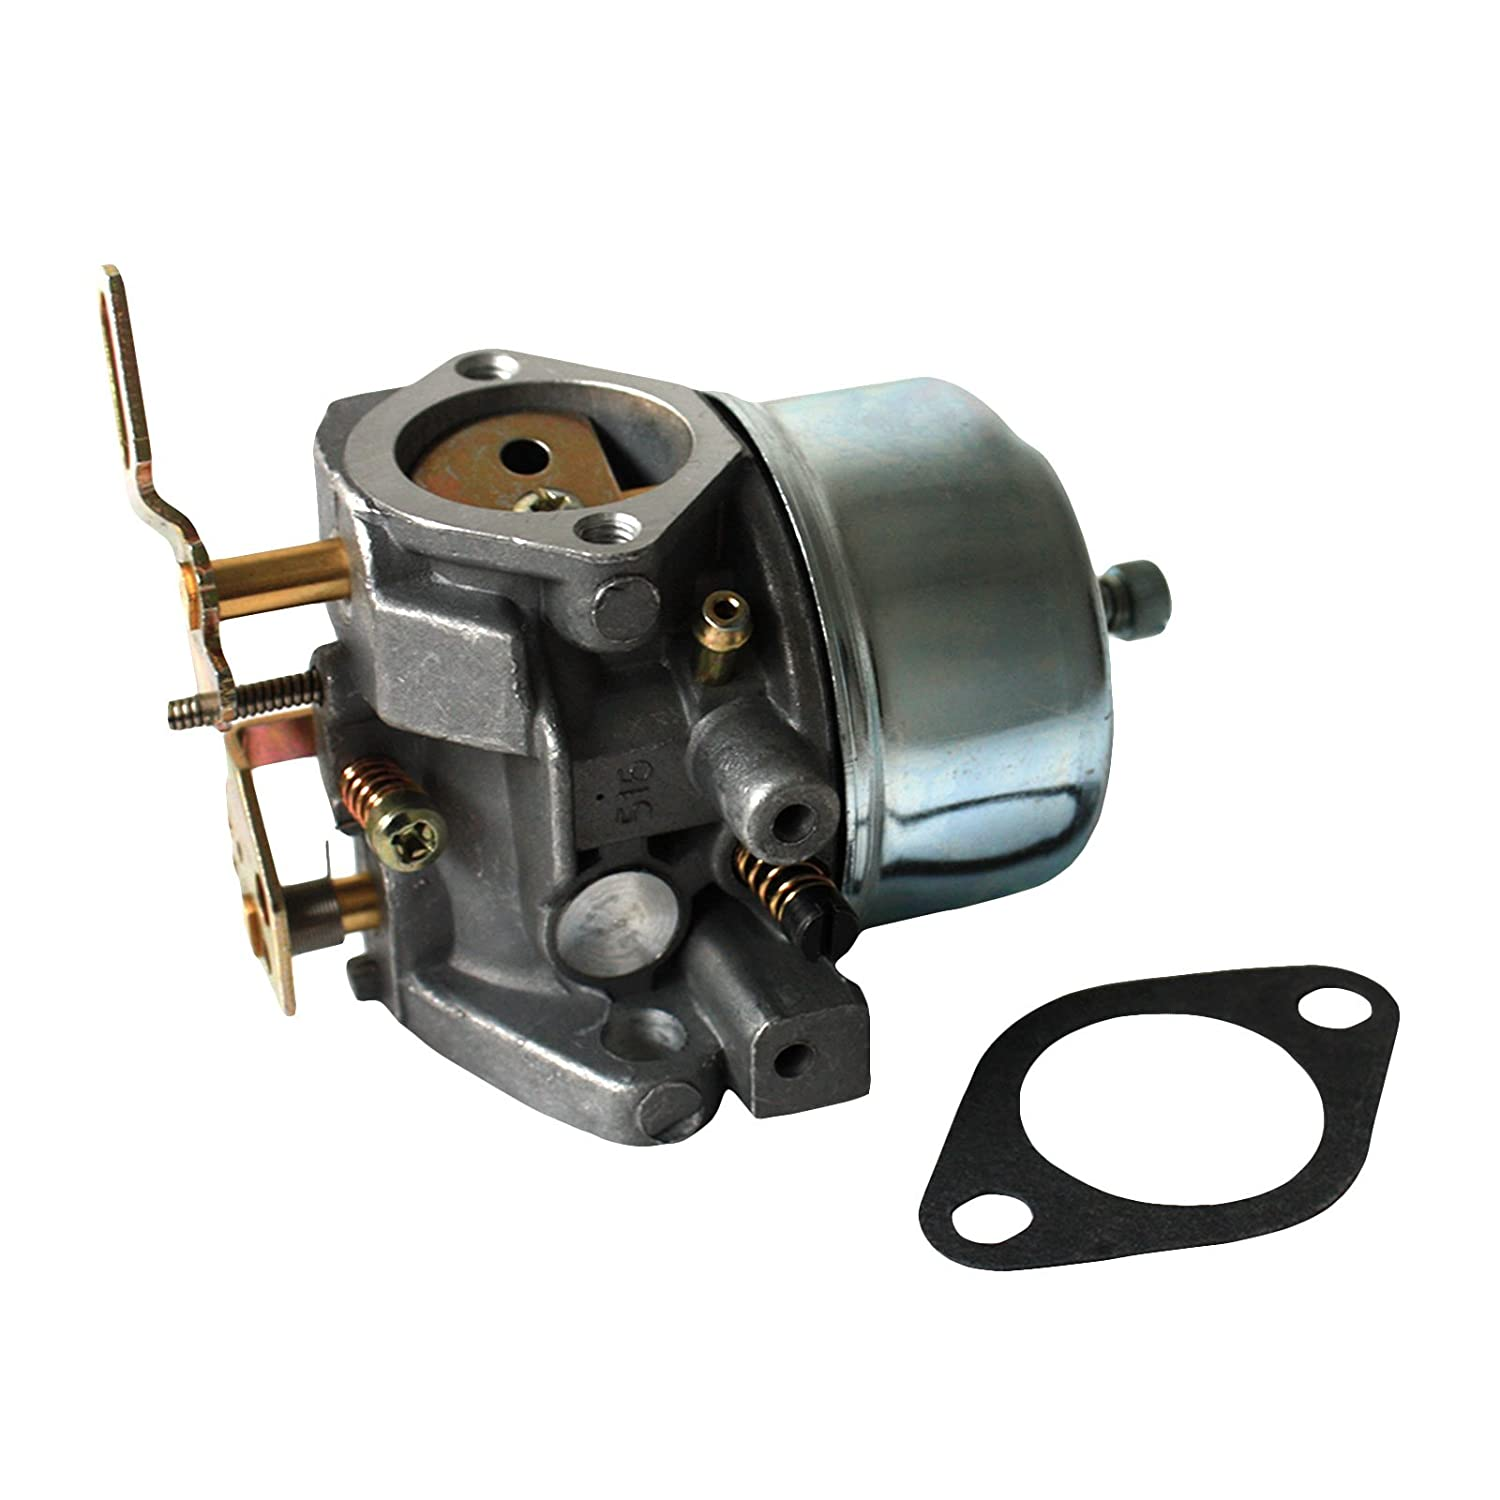 Carburetor Fits Tecumseh 632334a Hm70 Hm80 Hmsk80 Hmsk90 Diagram Parts List For Model H6075506n Tecumsehparts All Carburetors Amazon Canada